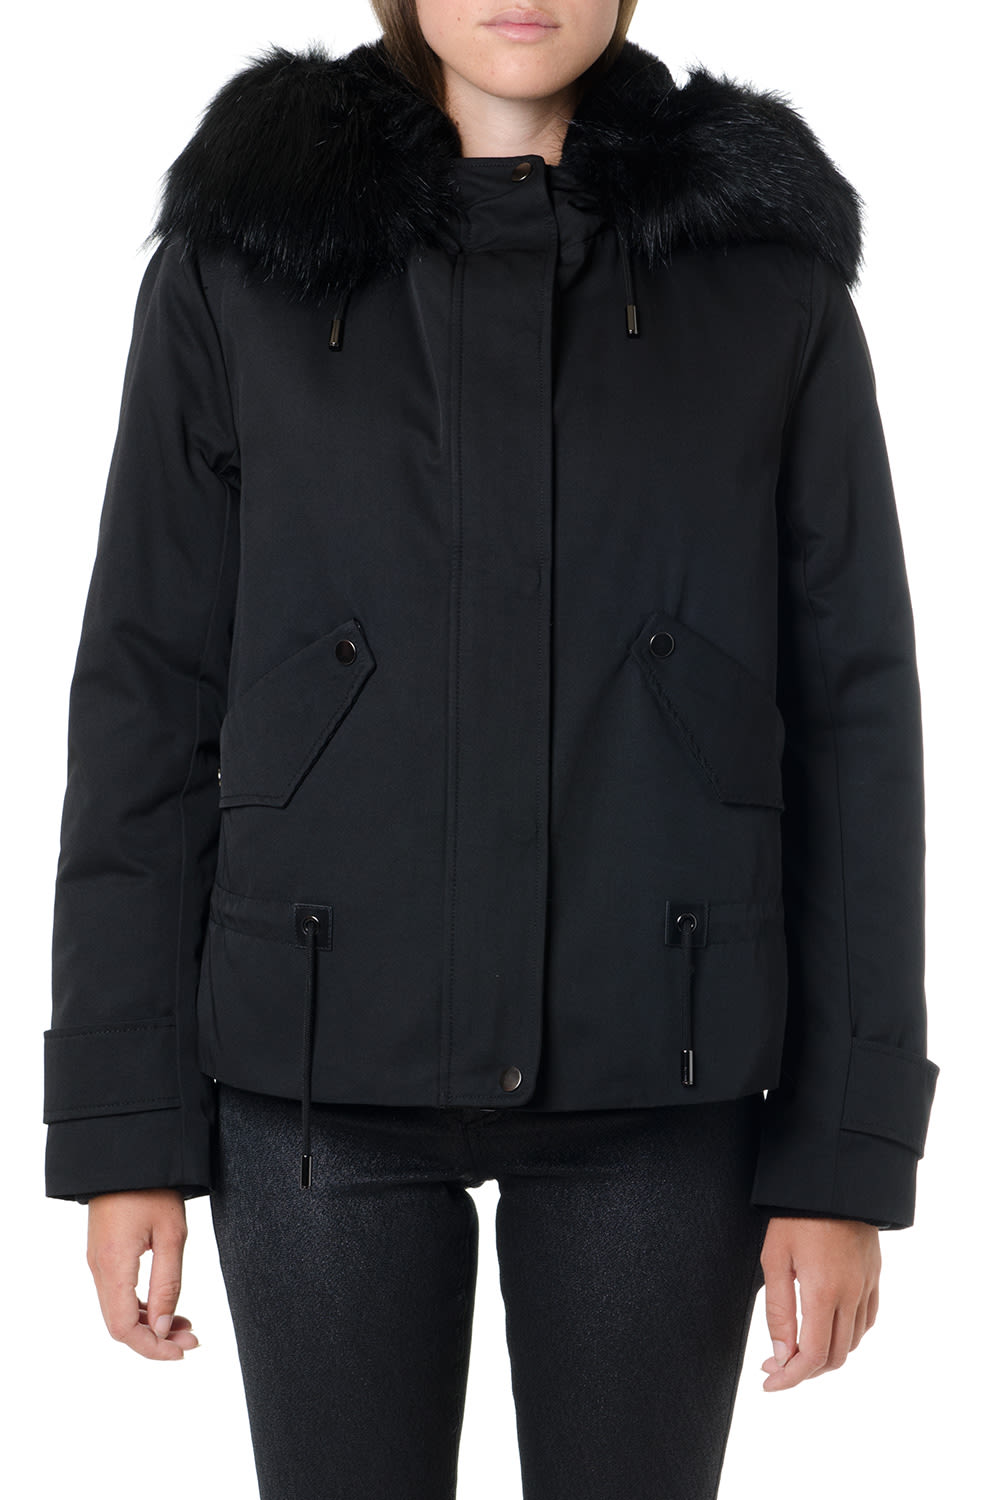 Dondup Black Technical Parka Jacket